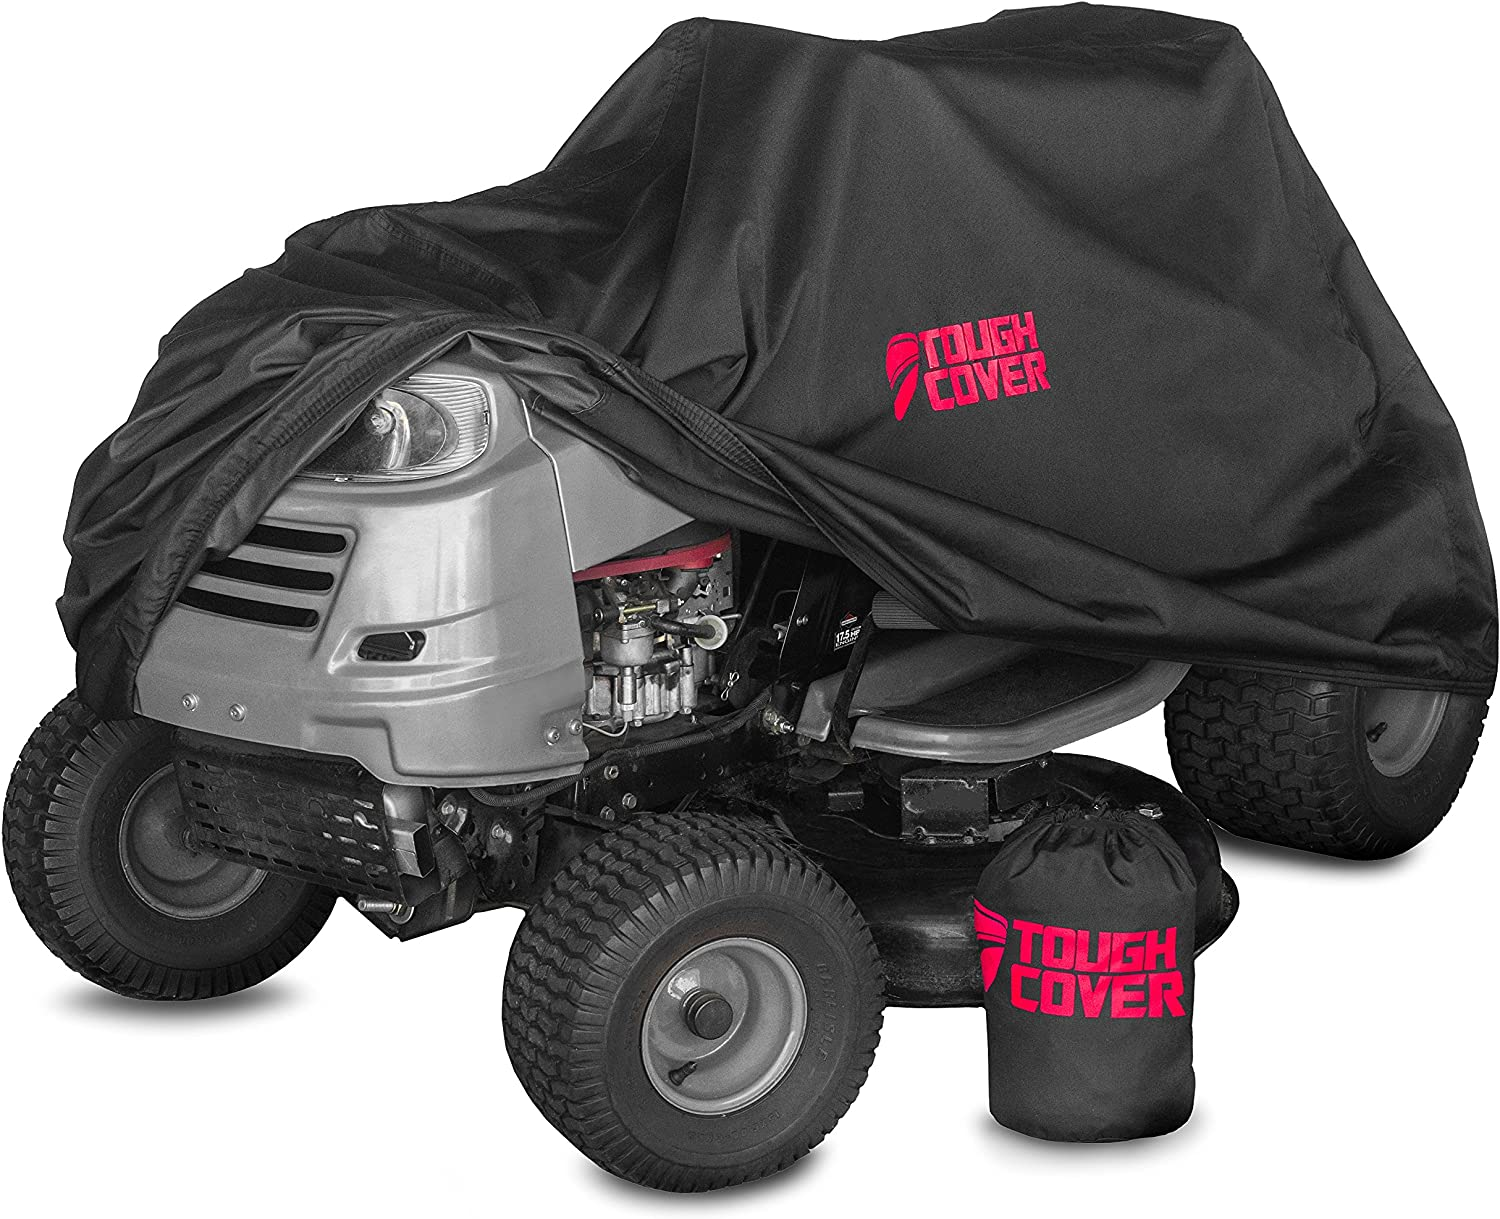 ToughCover Premium Lawn Tractor Cover